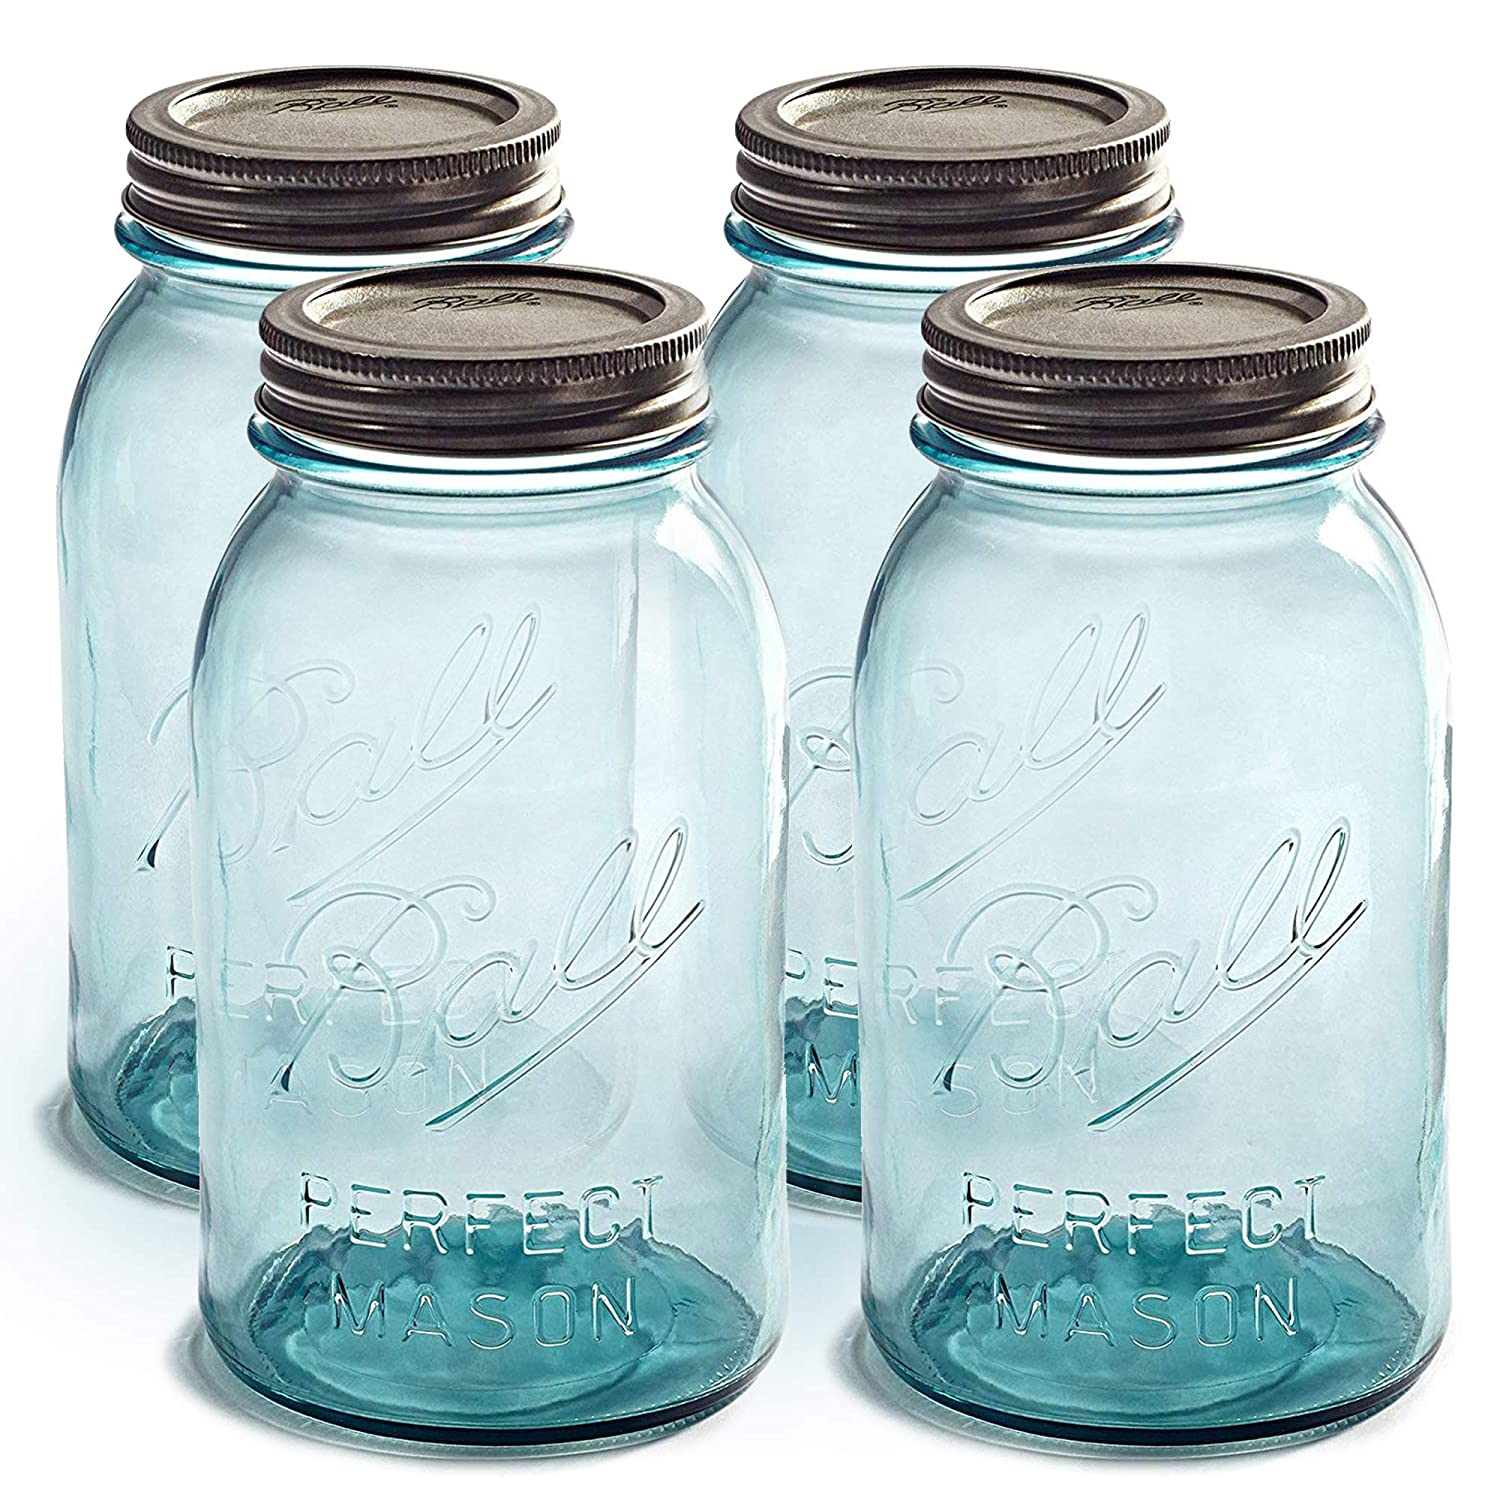 Ball Aqua Canning Jars 32 oz Regular Mouth - Set of 4 Vintage Mason Jars Aqua-colored glass with Airtight lids & Bands - DIY crafts & Decor - Safe For Canning, Pickling, Storage + SEWANTA Jar Opener